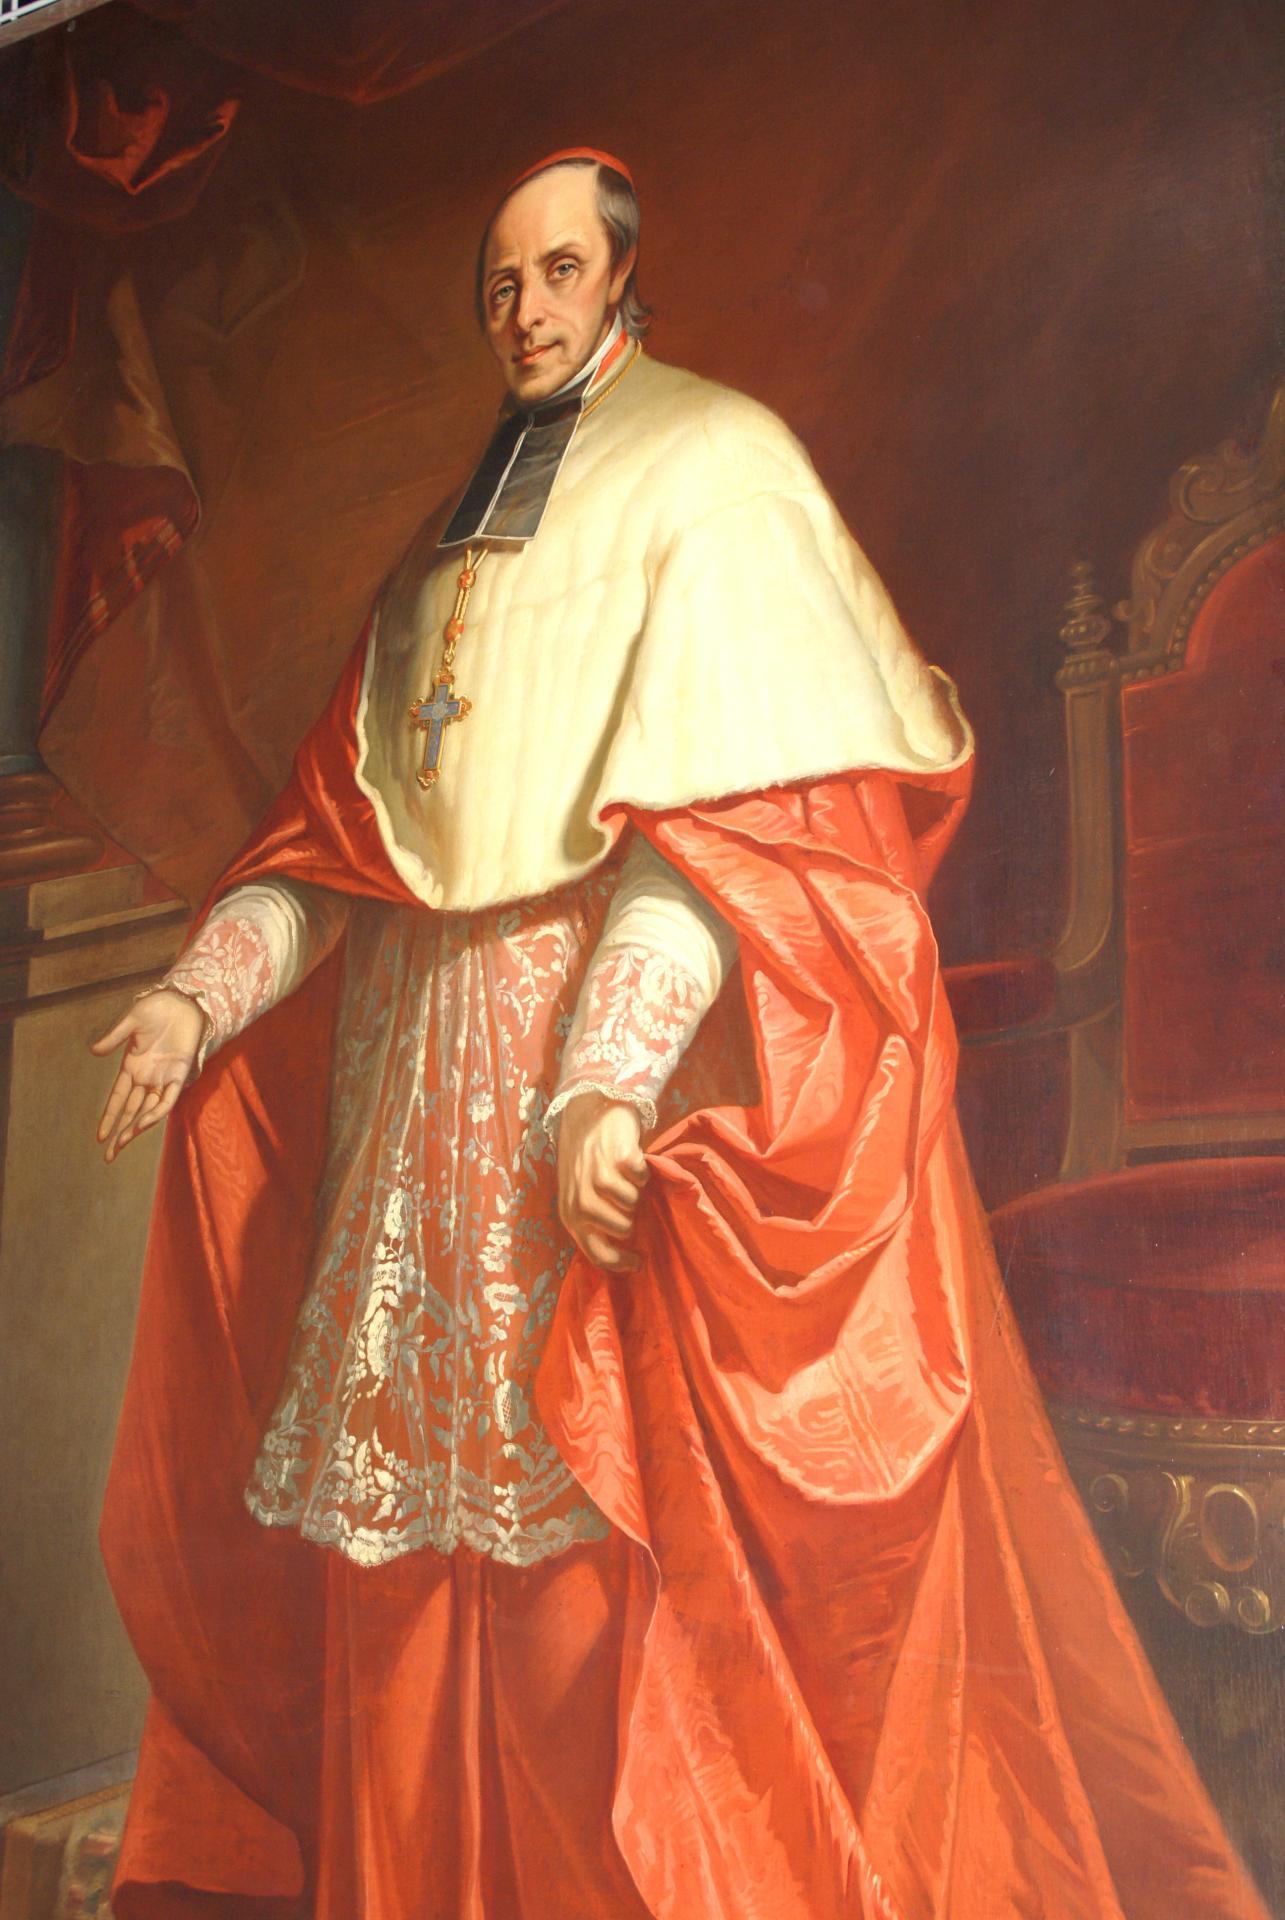 Mgr. de Bonnechose